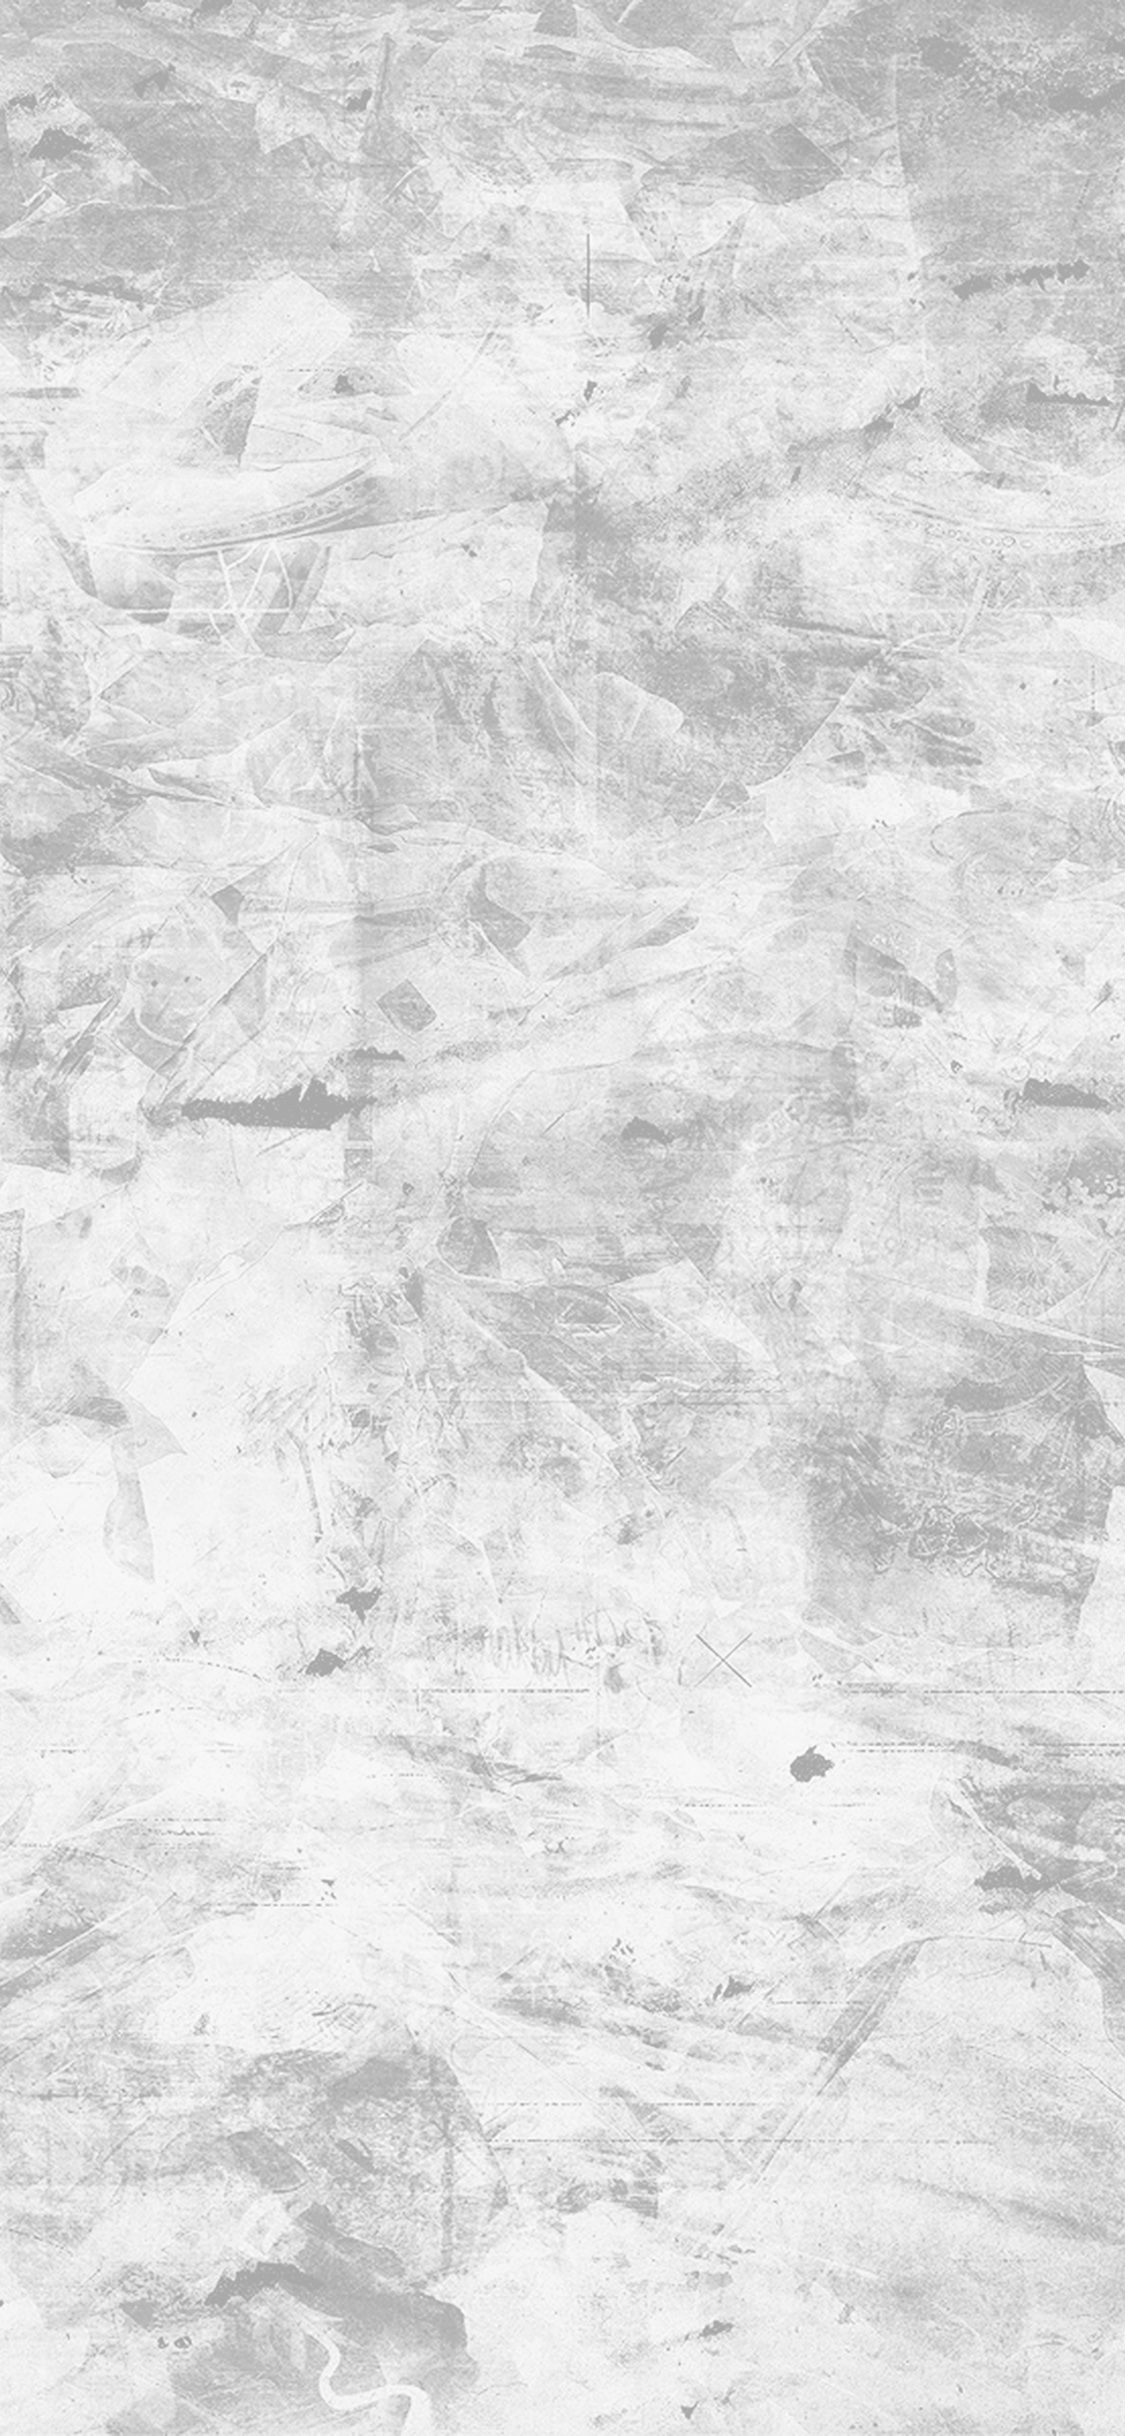 Good Wallpaper Marble Ios - papers  Perfect Image Reference_183925.jpg